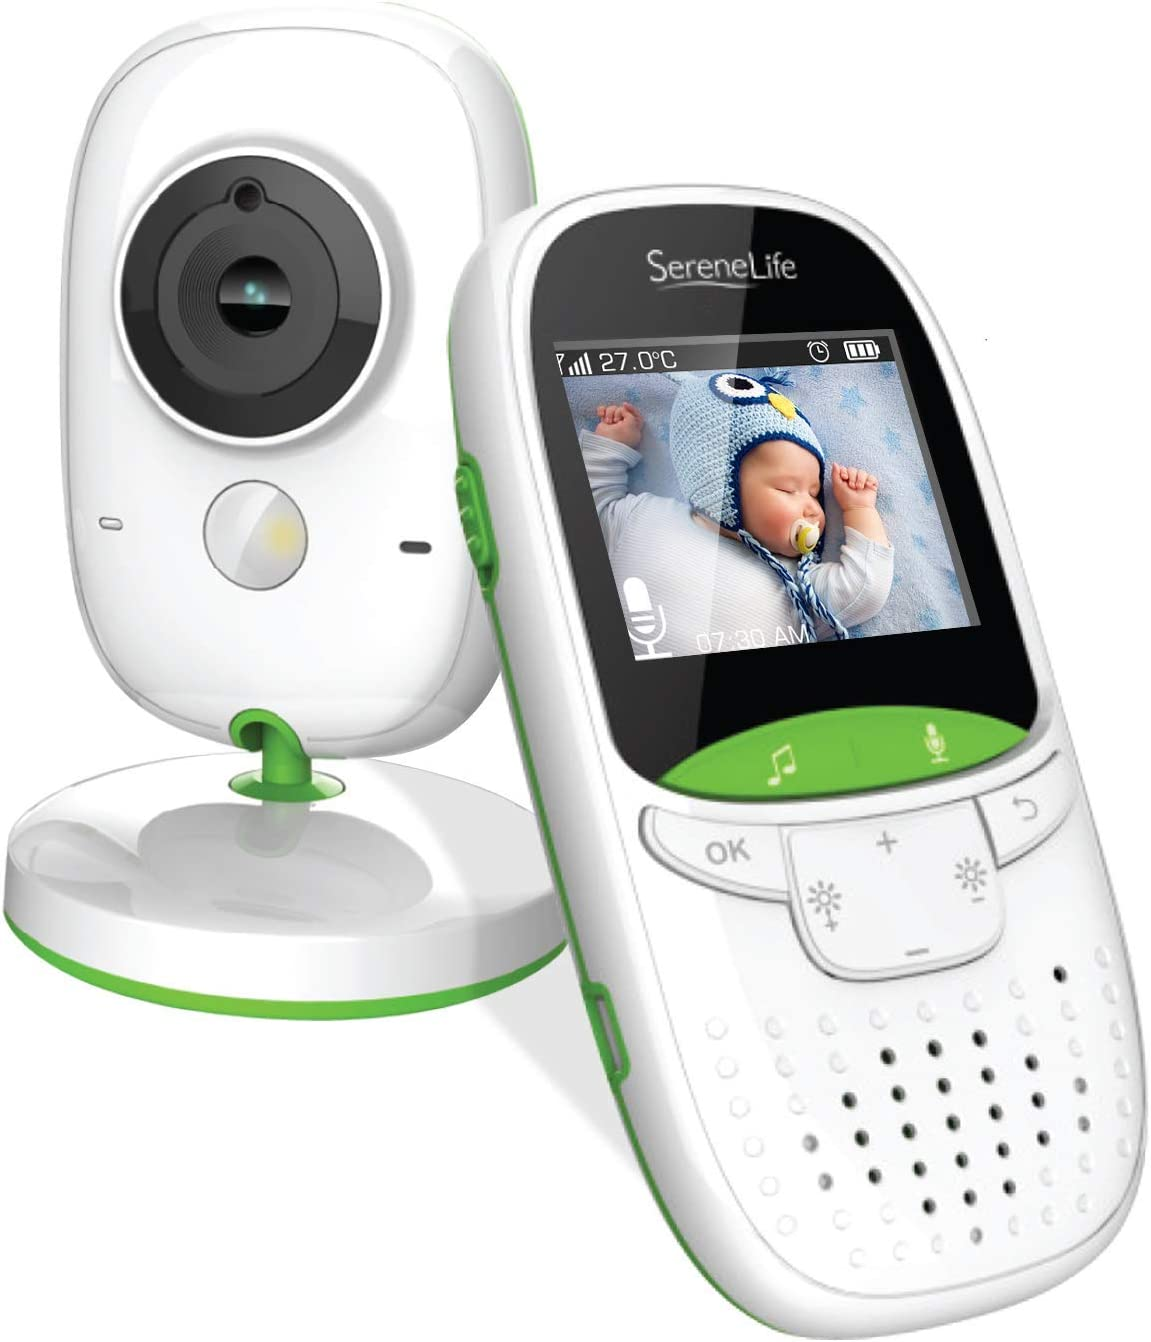 """SereneLife USA Video Baby Monitor - Upgraded 850' Wireless Long Range Camera, Night Vision, Temperature Monitoring and Portable 2"""" Color Screen with Clip - SLBCAM10.5, Green"""